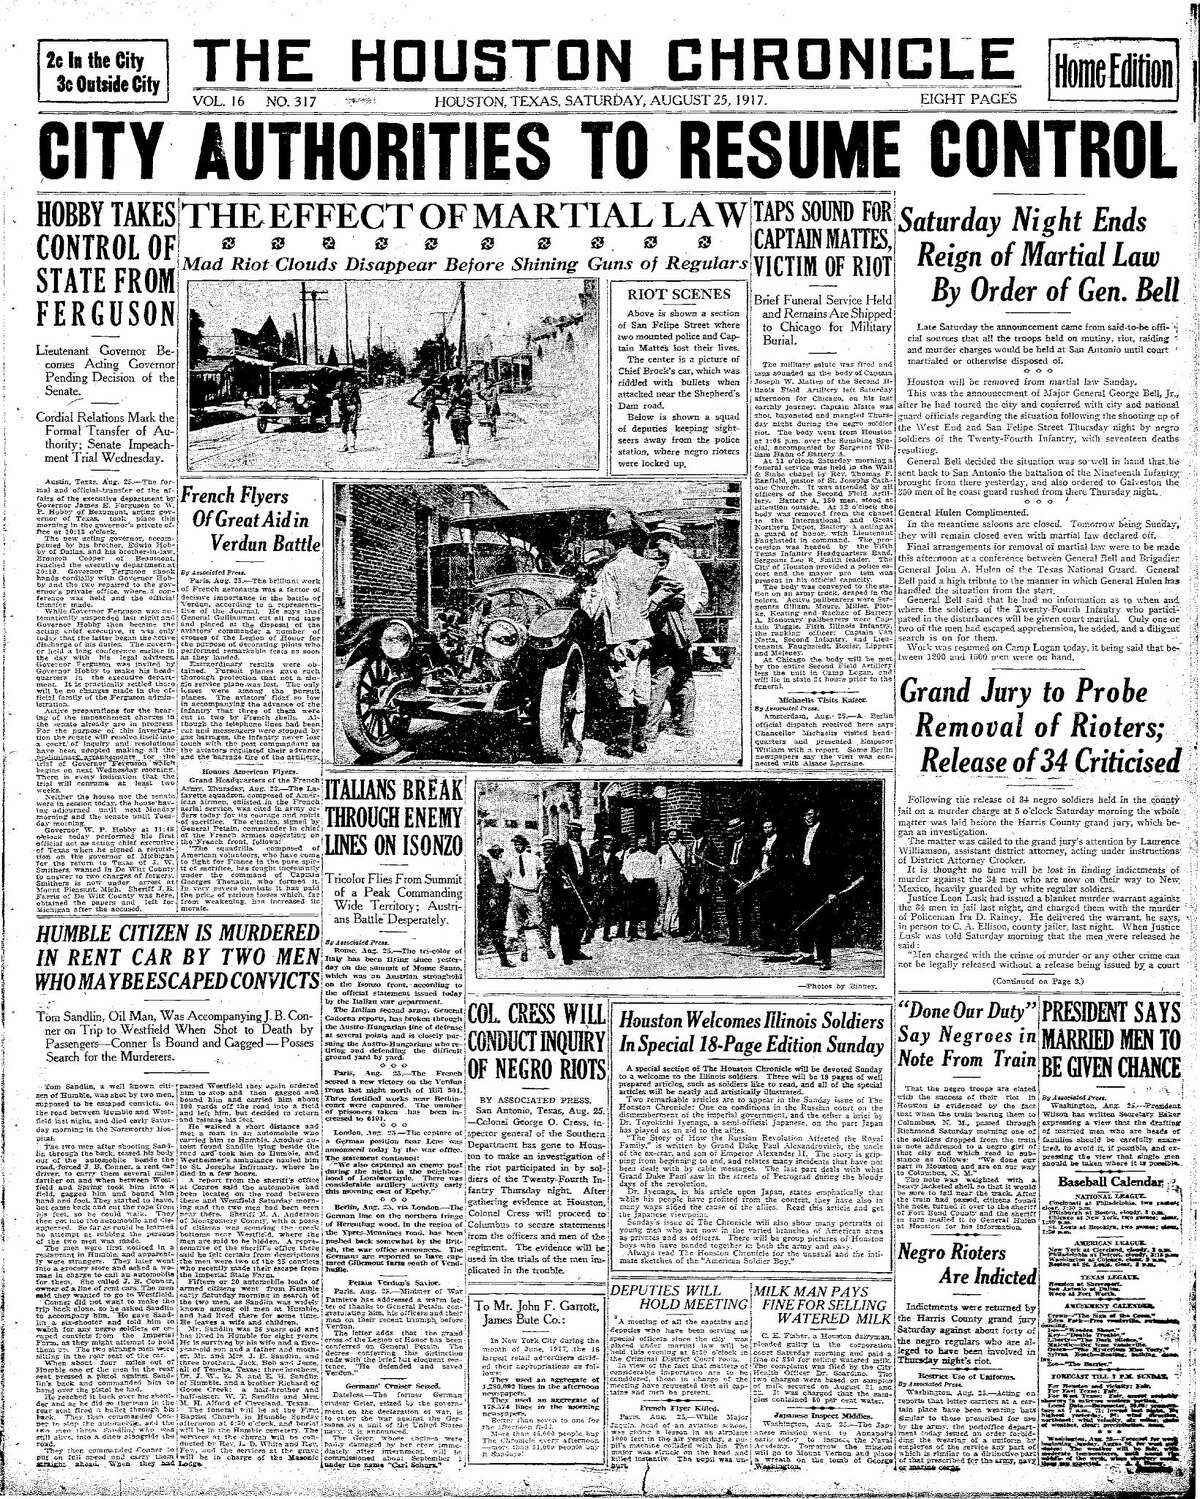 Houston Chronicle front page for Aug. 25, 1917.